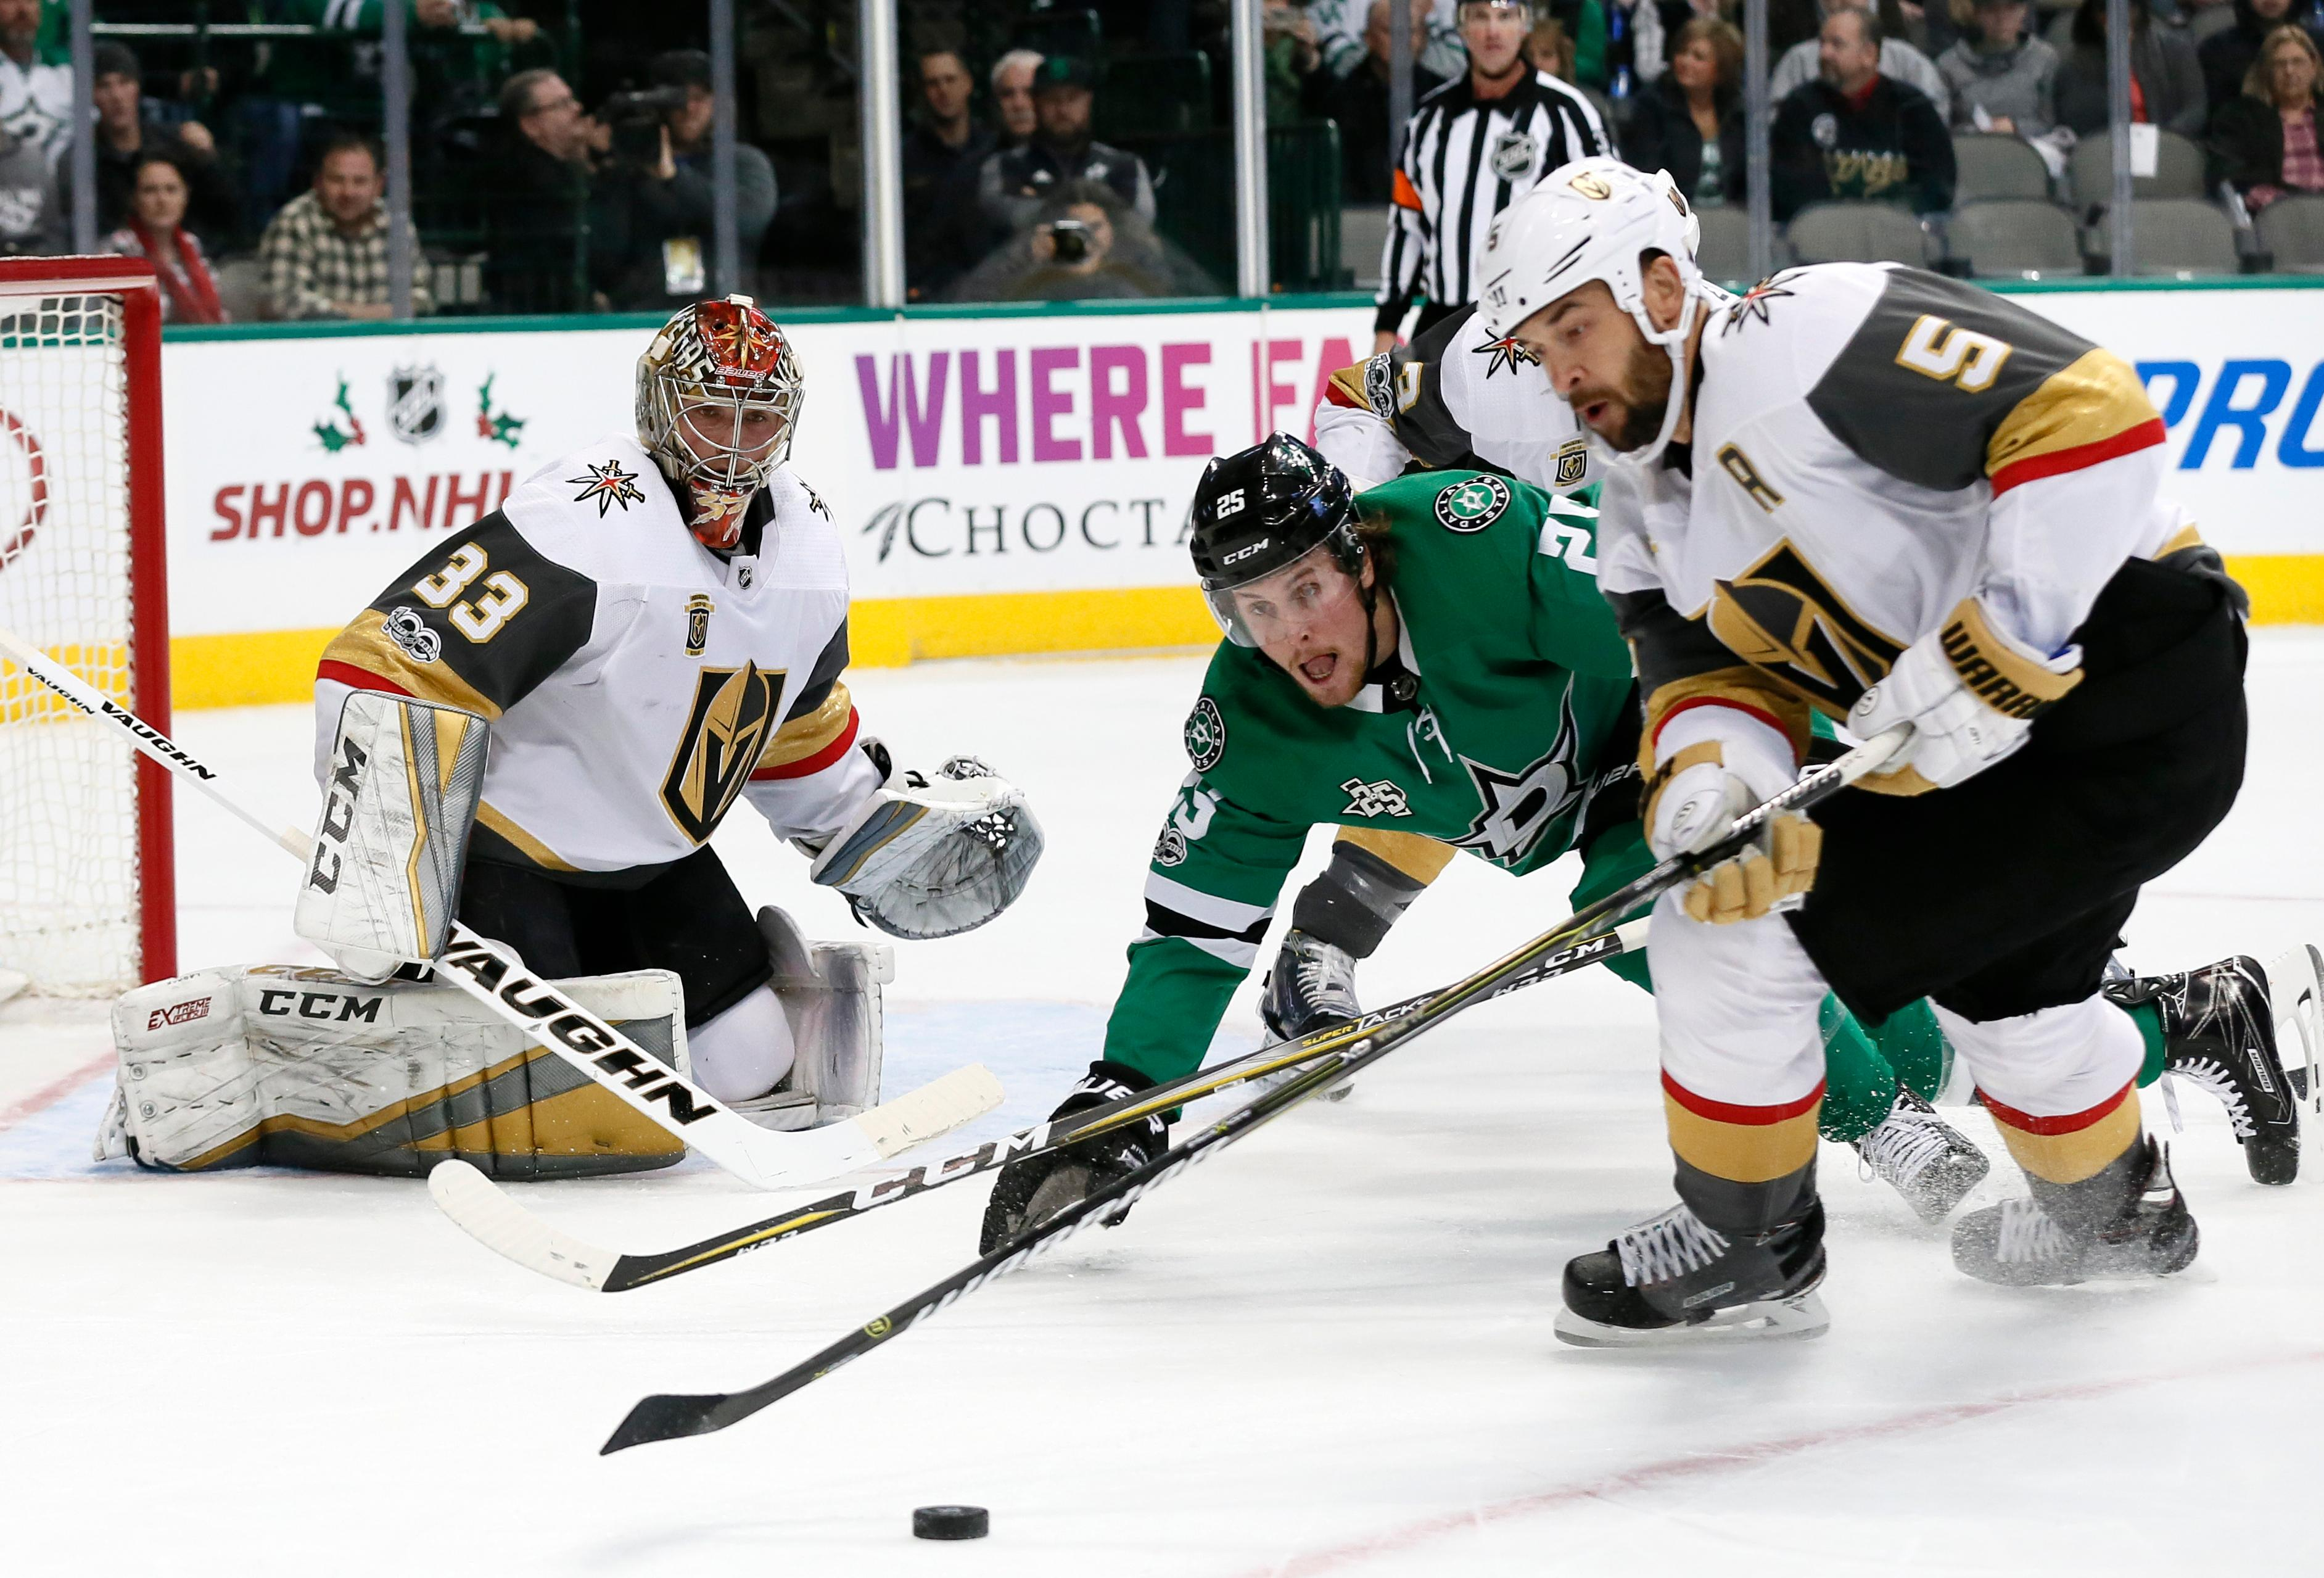 Vegas Golden Knights' Maxime Lagace (33) and Dallas Stars right wing Brett Ritchie (25) watch as defenseman Deryk Engelland (5) clears a puck from in front of the net during the first period of an NHL hockey game, Saturday, Dec. 9, 2017, in Dallas. (AP Photo/Tony Gutierrez)